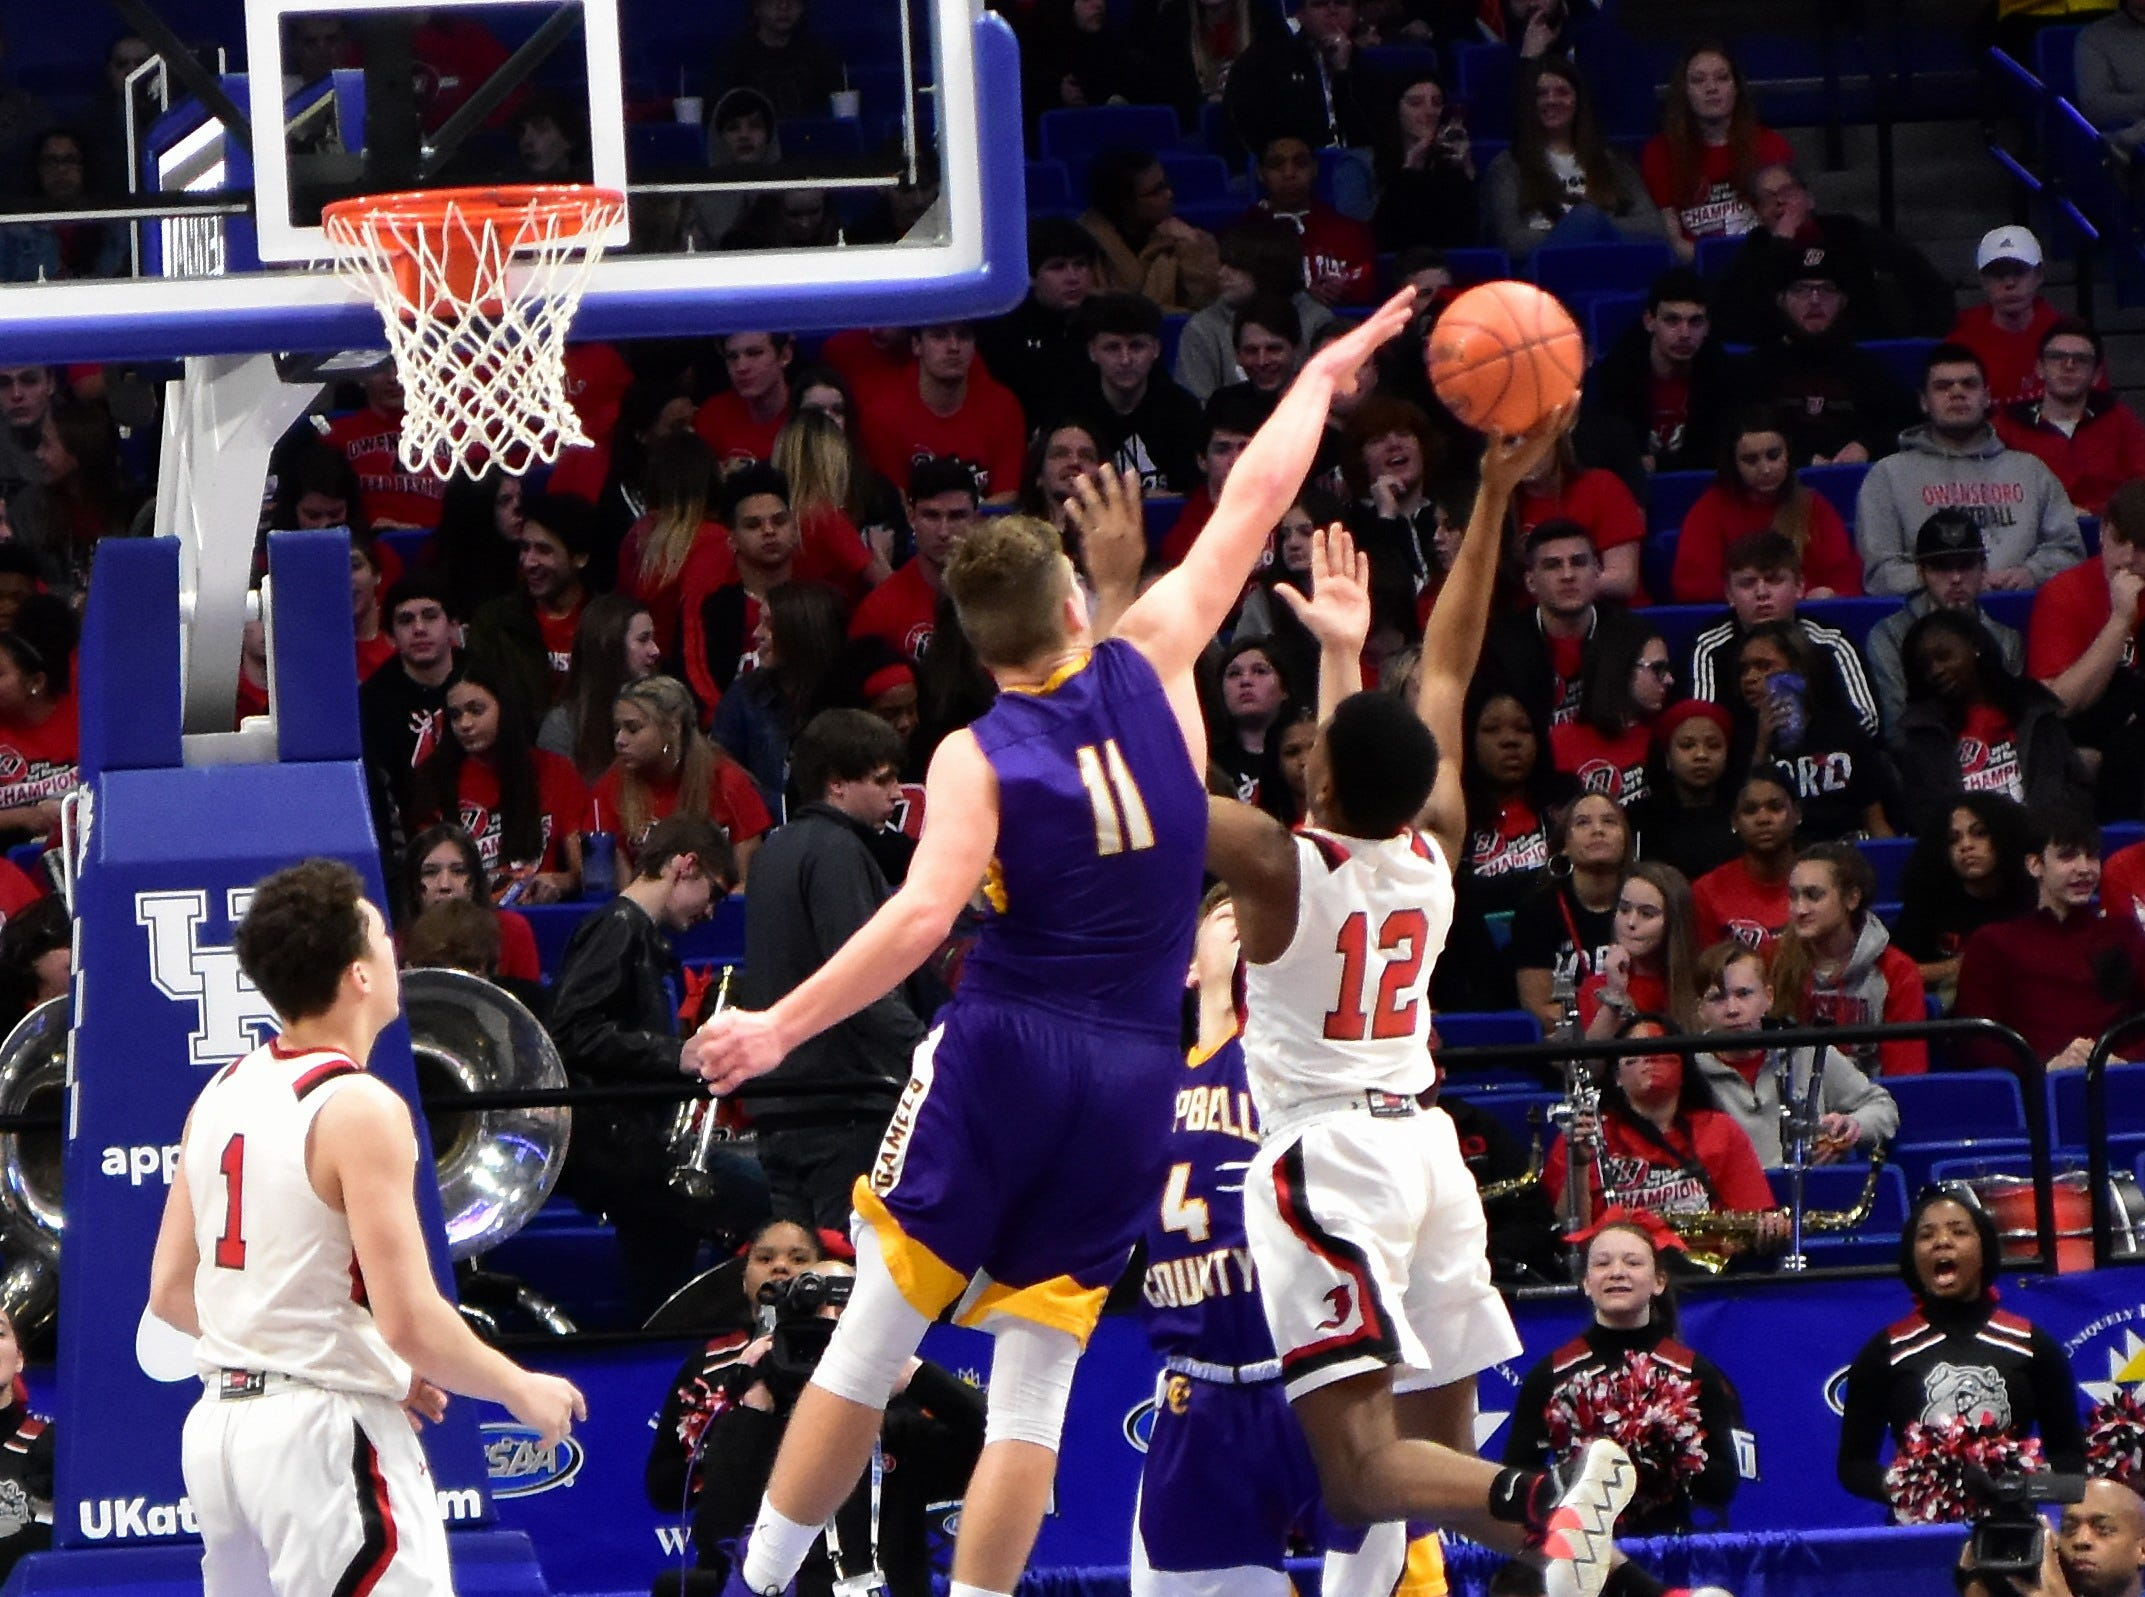 Campbell County's Reid Jolly rises to reject a a lay up from John Hardin at the KHSAA Sweet 16 Tournament at Rupp Arena in Lexington, KY, March 6, 2019